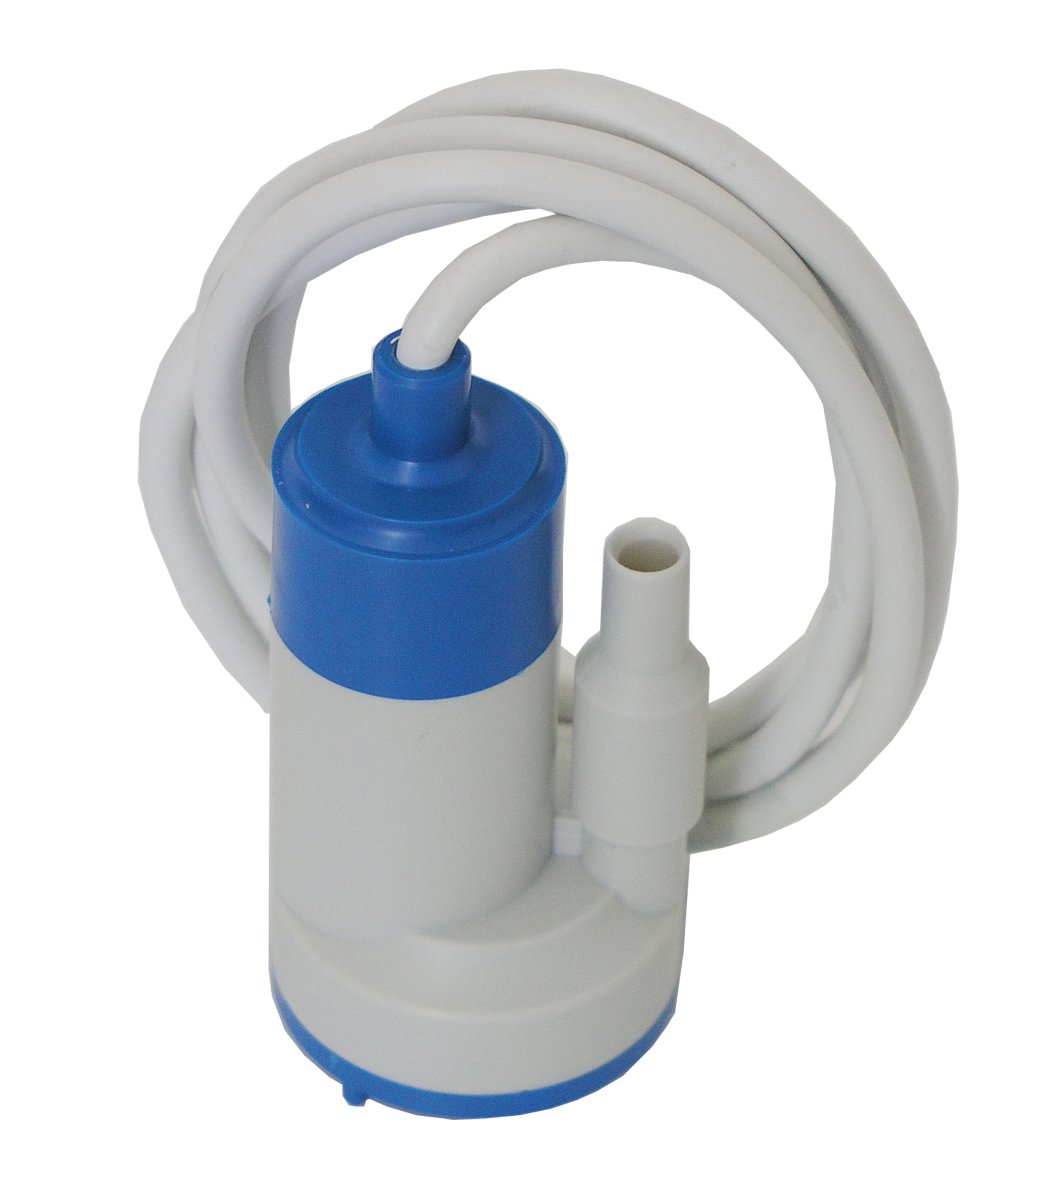 Tunze USA 5000.020 5000.020 USA Replacement Pump for B000N0Z9YE Osmolator and Nano Osmolator by Tunze USA LLC B000N0Z9YE, トレハン:45b53601 --- ijpba.info